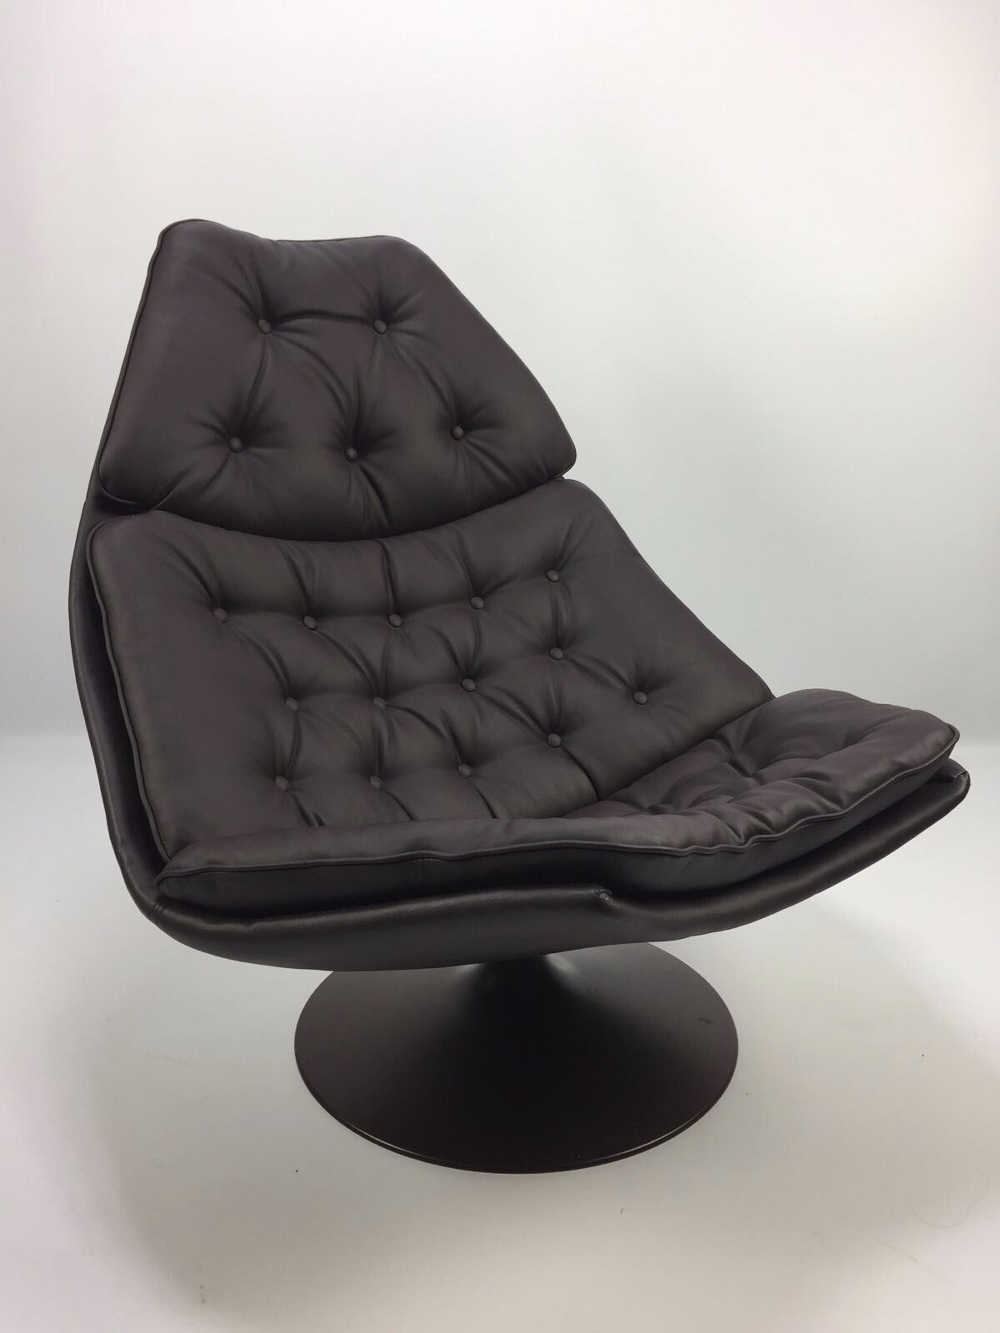 Egg Chair Bruin Leer.Sold This Nice Lounge Chair With Footstool By Geoffrey Harcourt